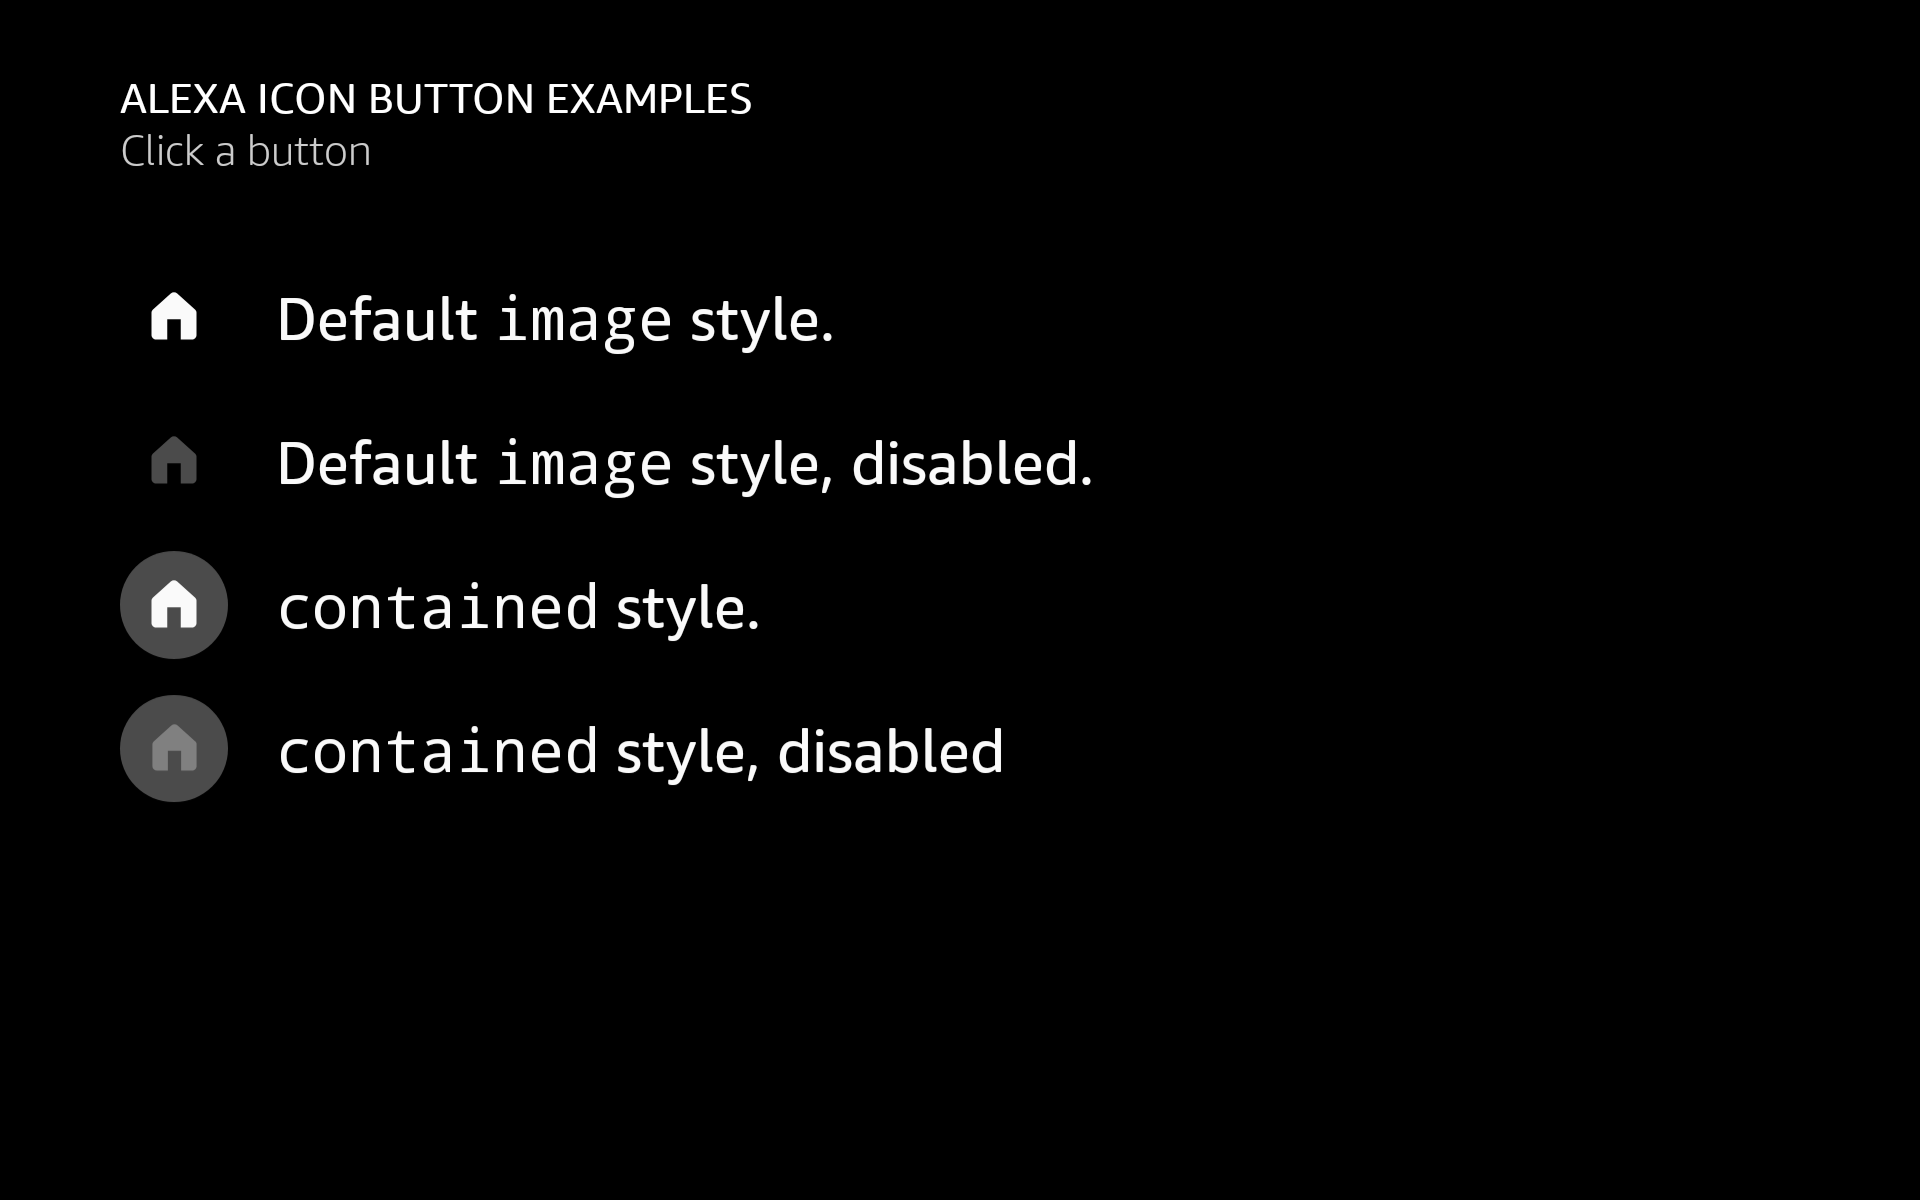 AlexaIconButton examples in different styles